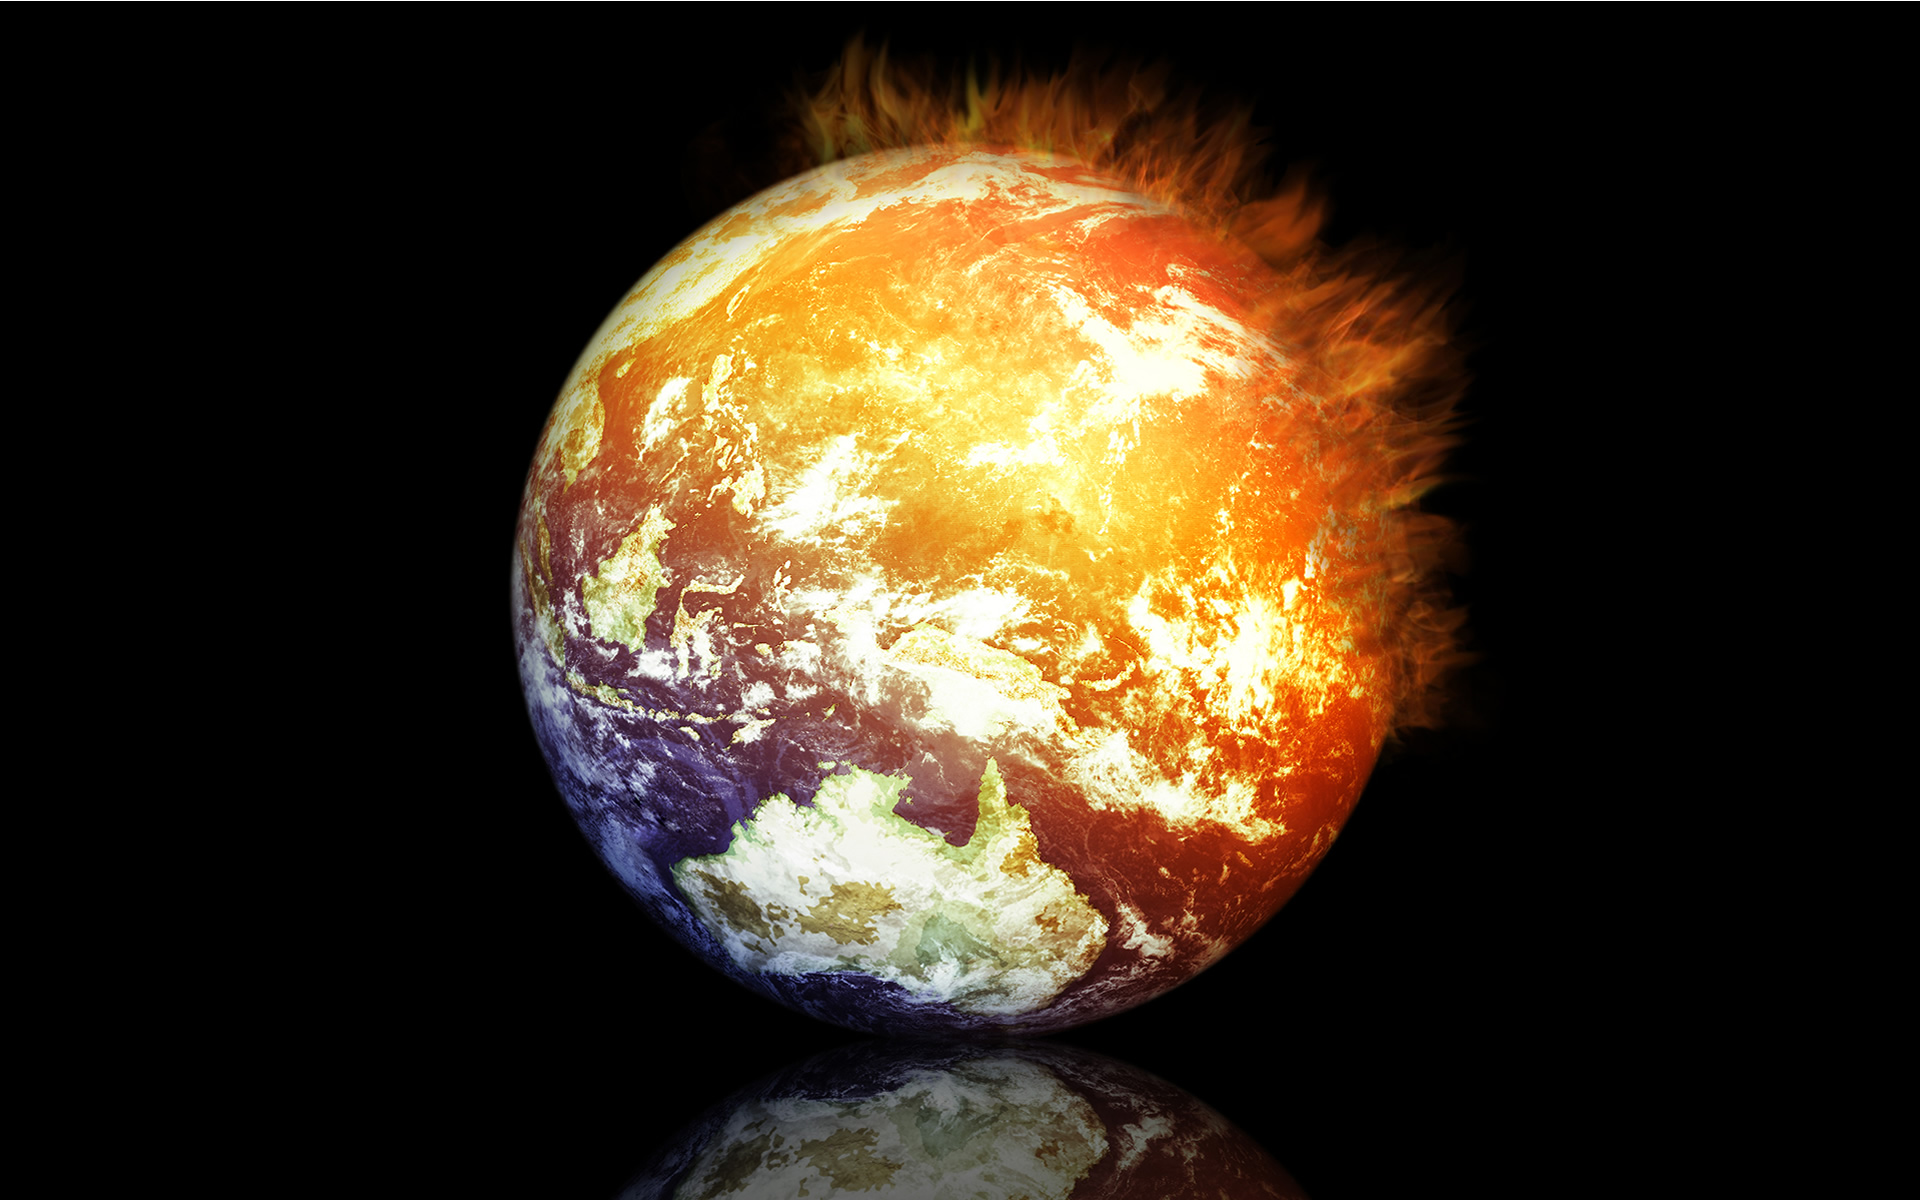 Digital Art Burning Earth